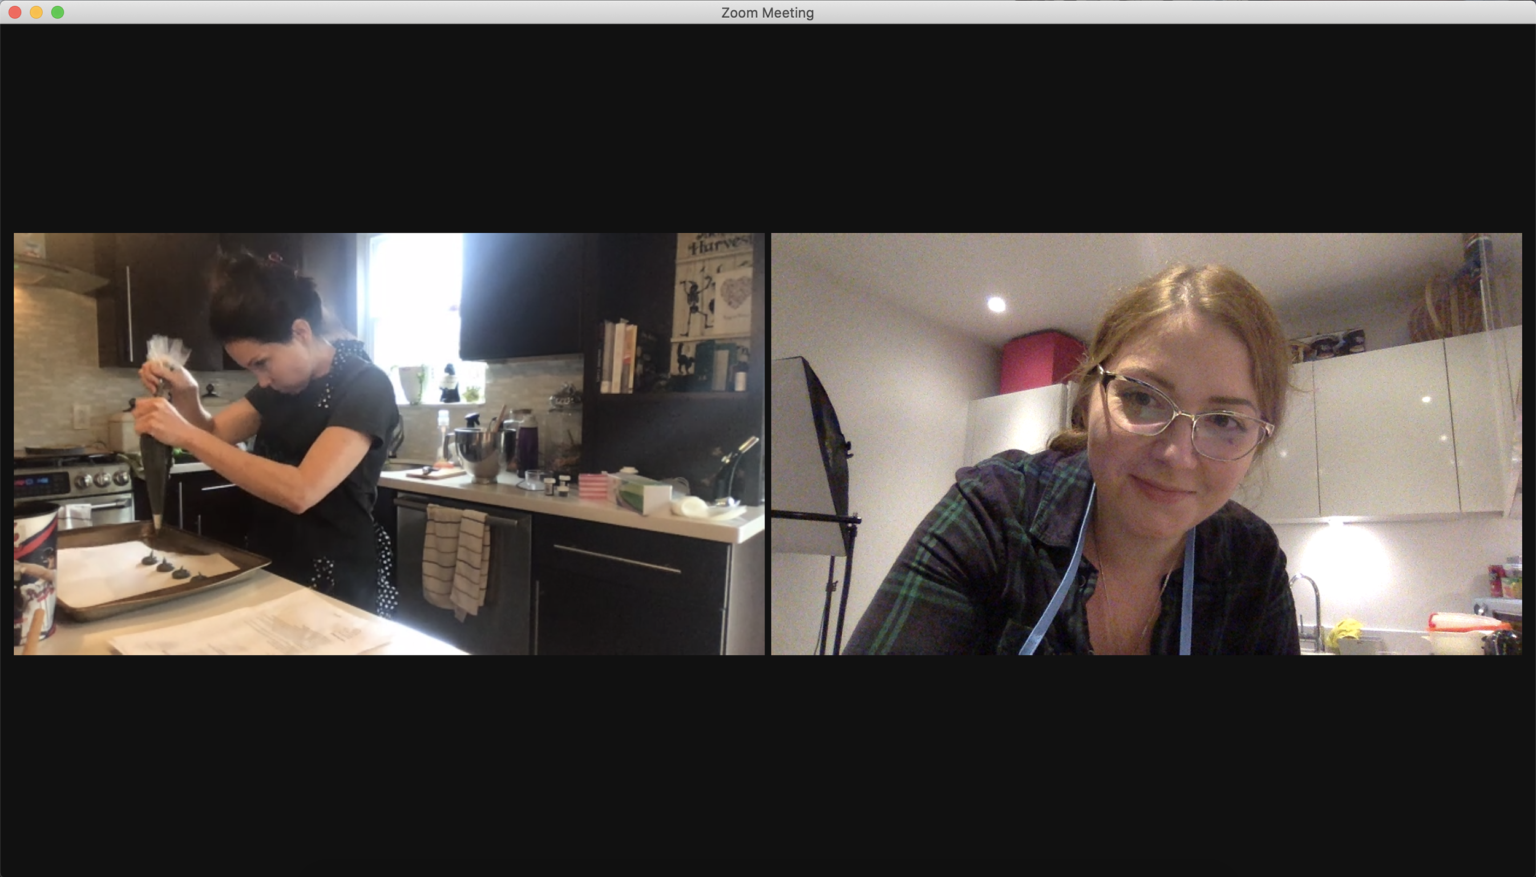 Two women on Zoom having a baking session